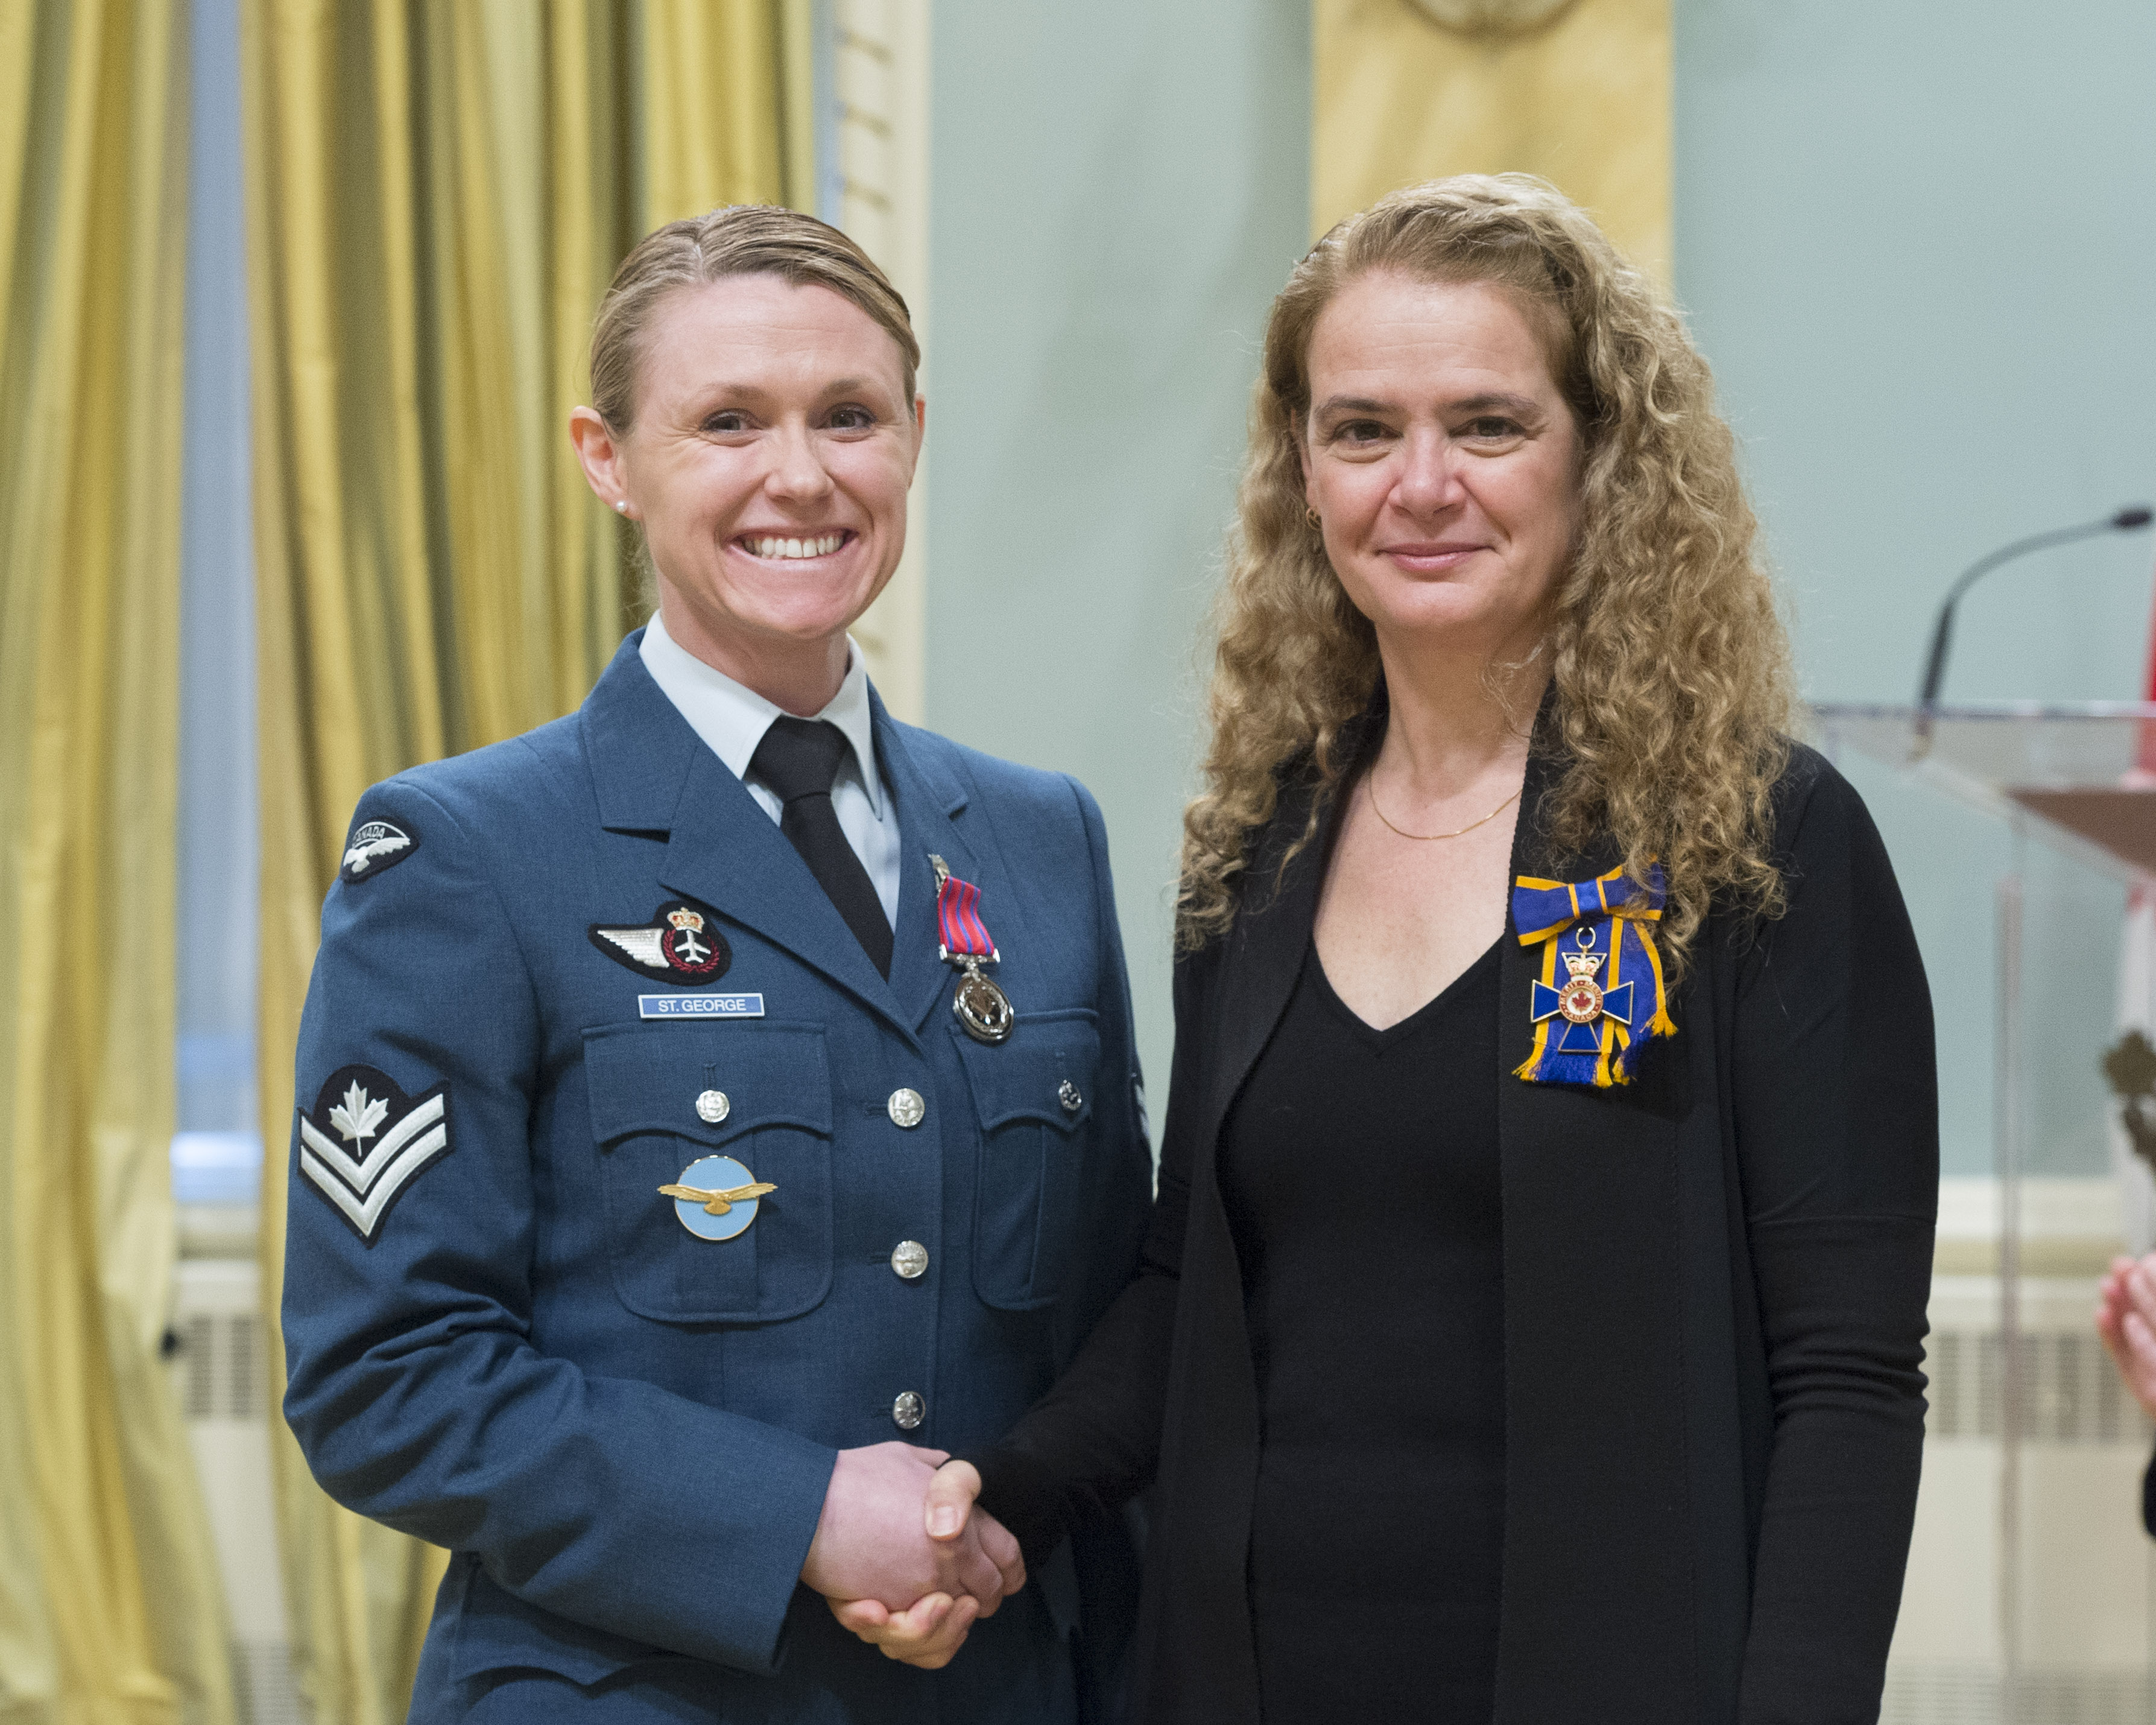 Master Corporal Alisha Dawn St. George receives the Medal of Bravery (Military Division) from Governor General and Commander-in-Chief of Canada Julie Payette on February 28, 2018. PHOTO: Sergeant Johanie Maheu, OSGG, GG05-2018-0066-054